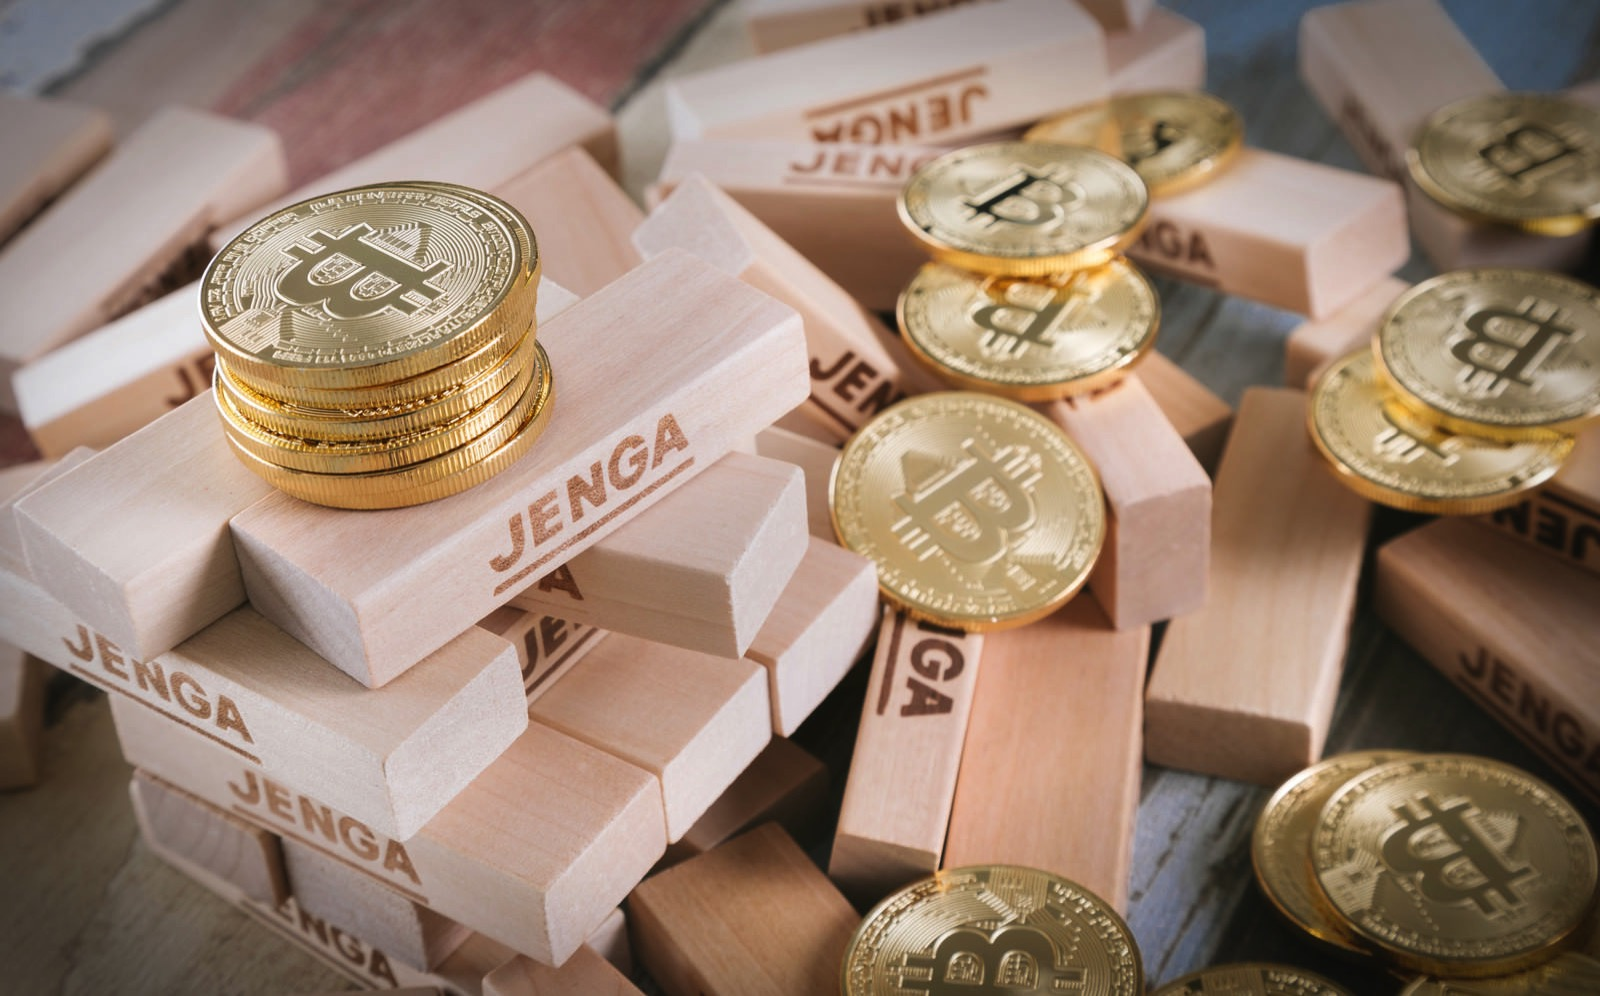 Bitcoin and jenga pakutaso